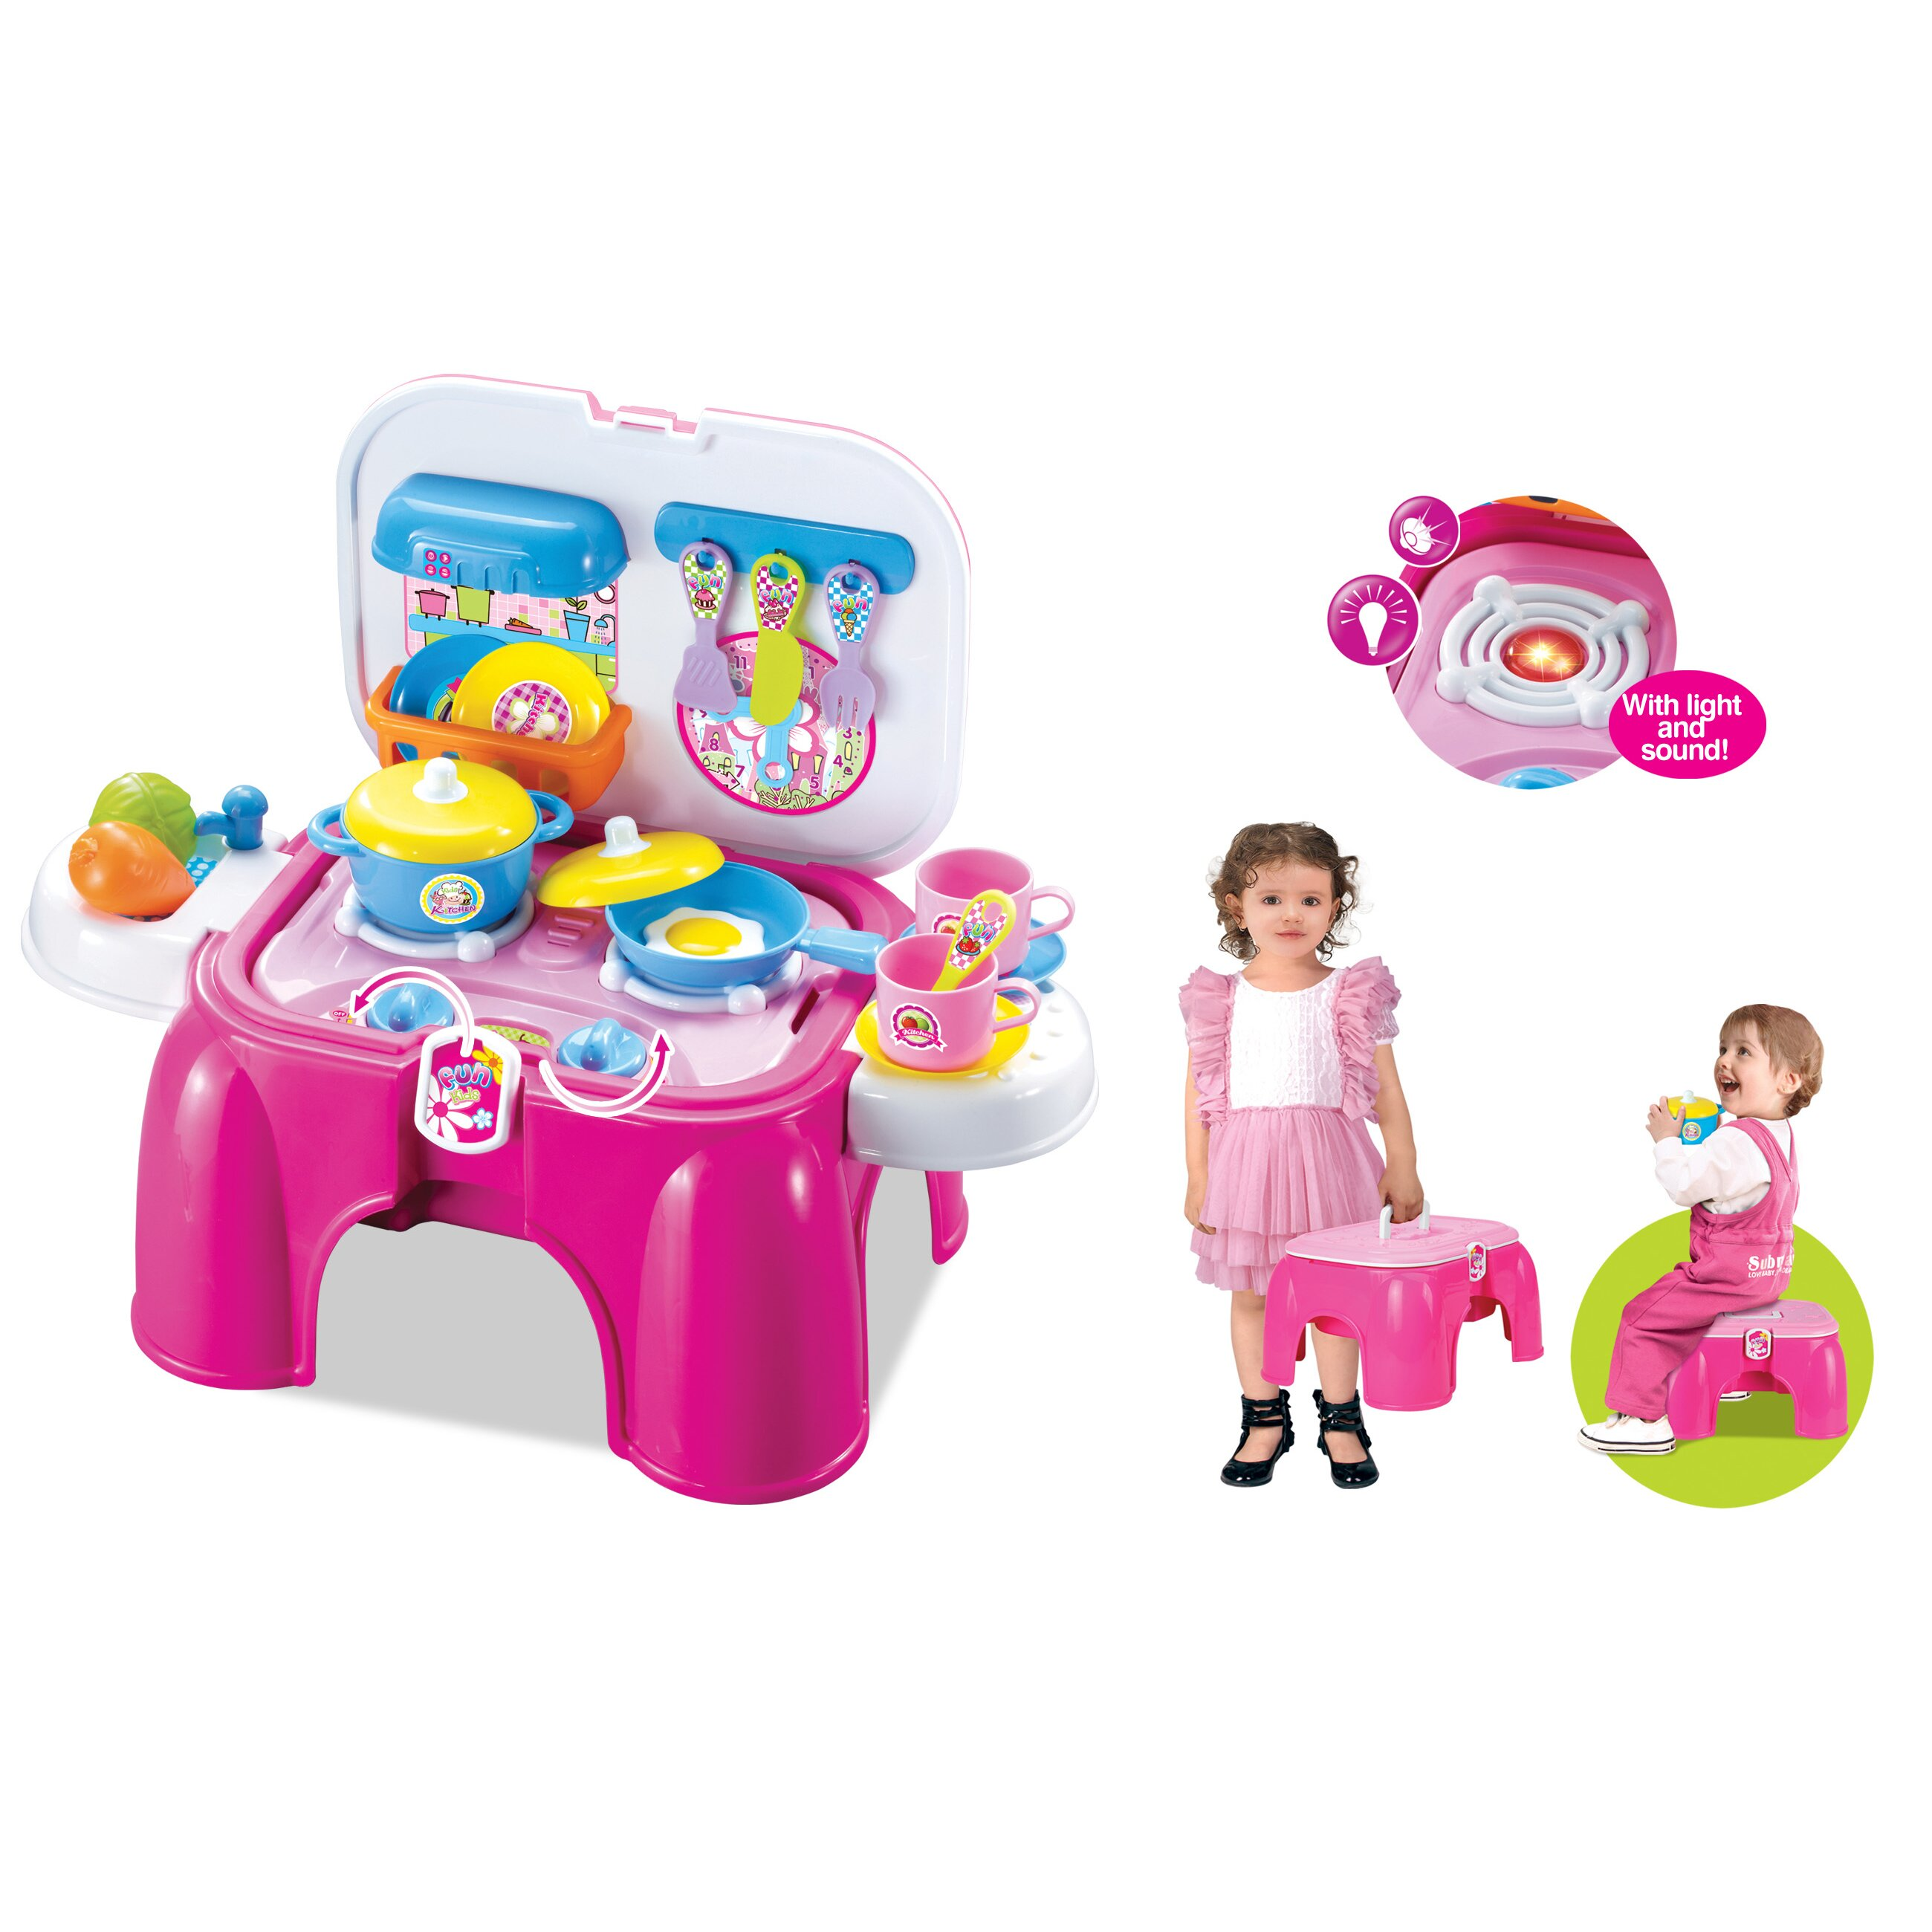 Berry toys my first portable play and carry kitchen bench for Kitchen set 008 82